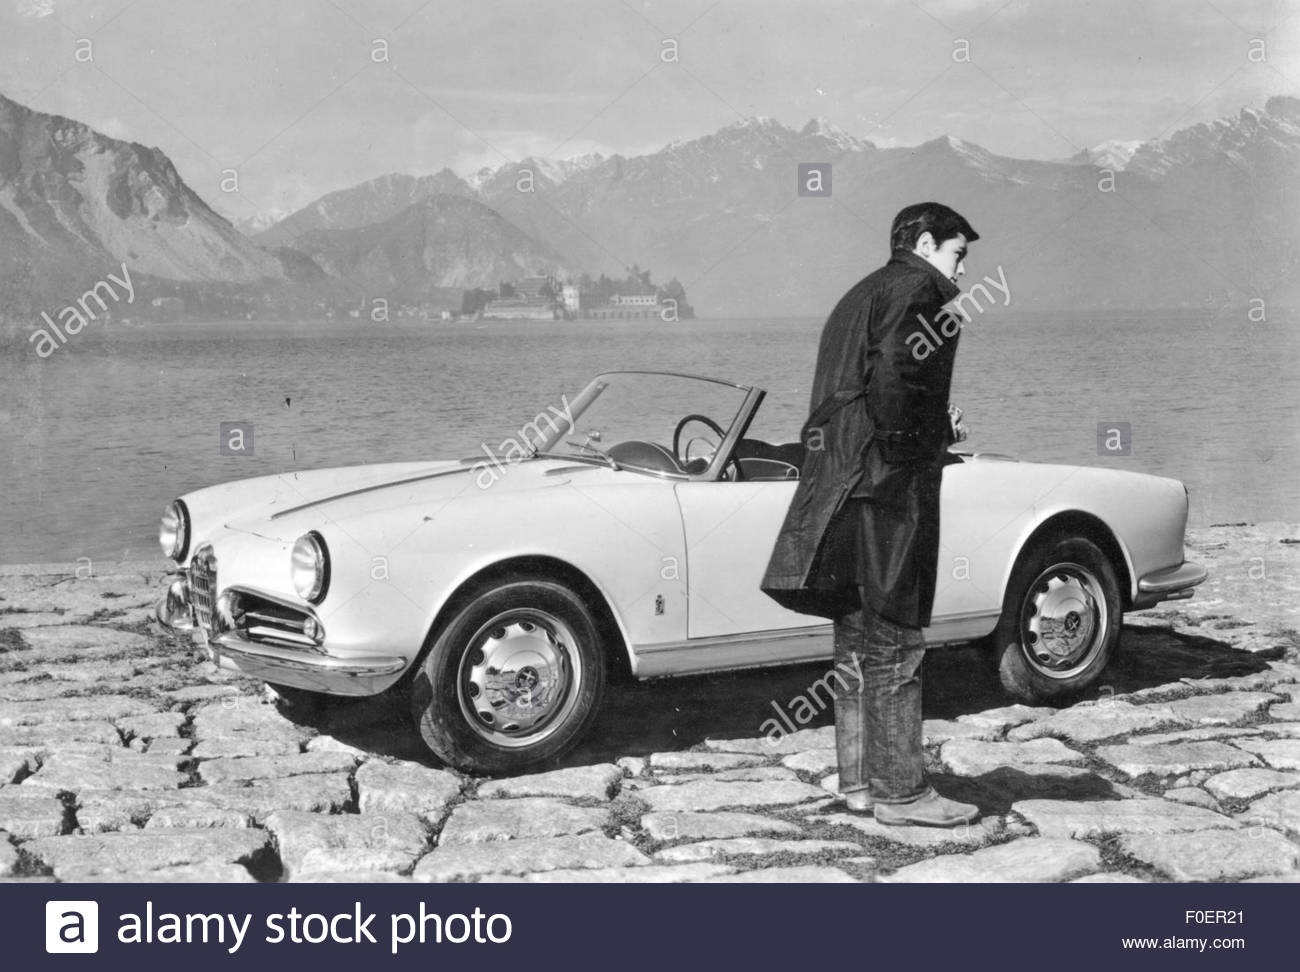 Delon, Alain, * 8.11.1935, French actor, full length, standing besides an Alfa Romeo, Lago Maggiore, 1950s, Additional - Stock Image